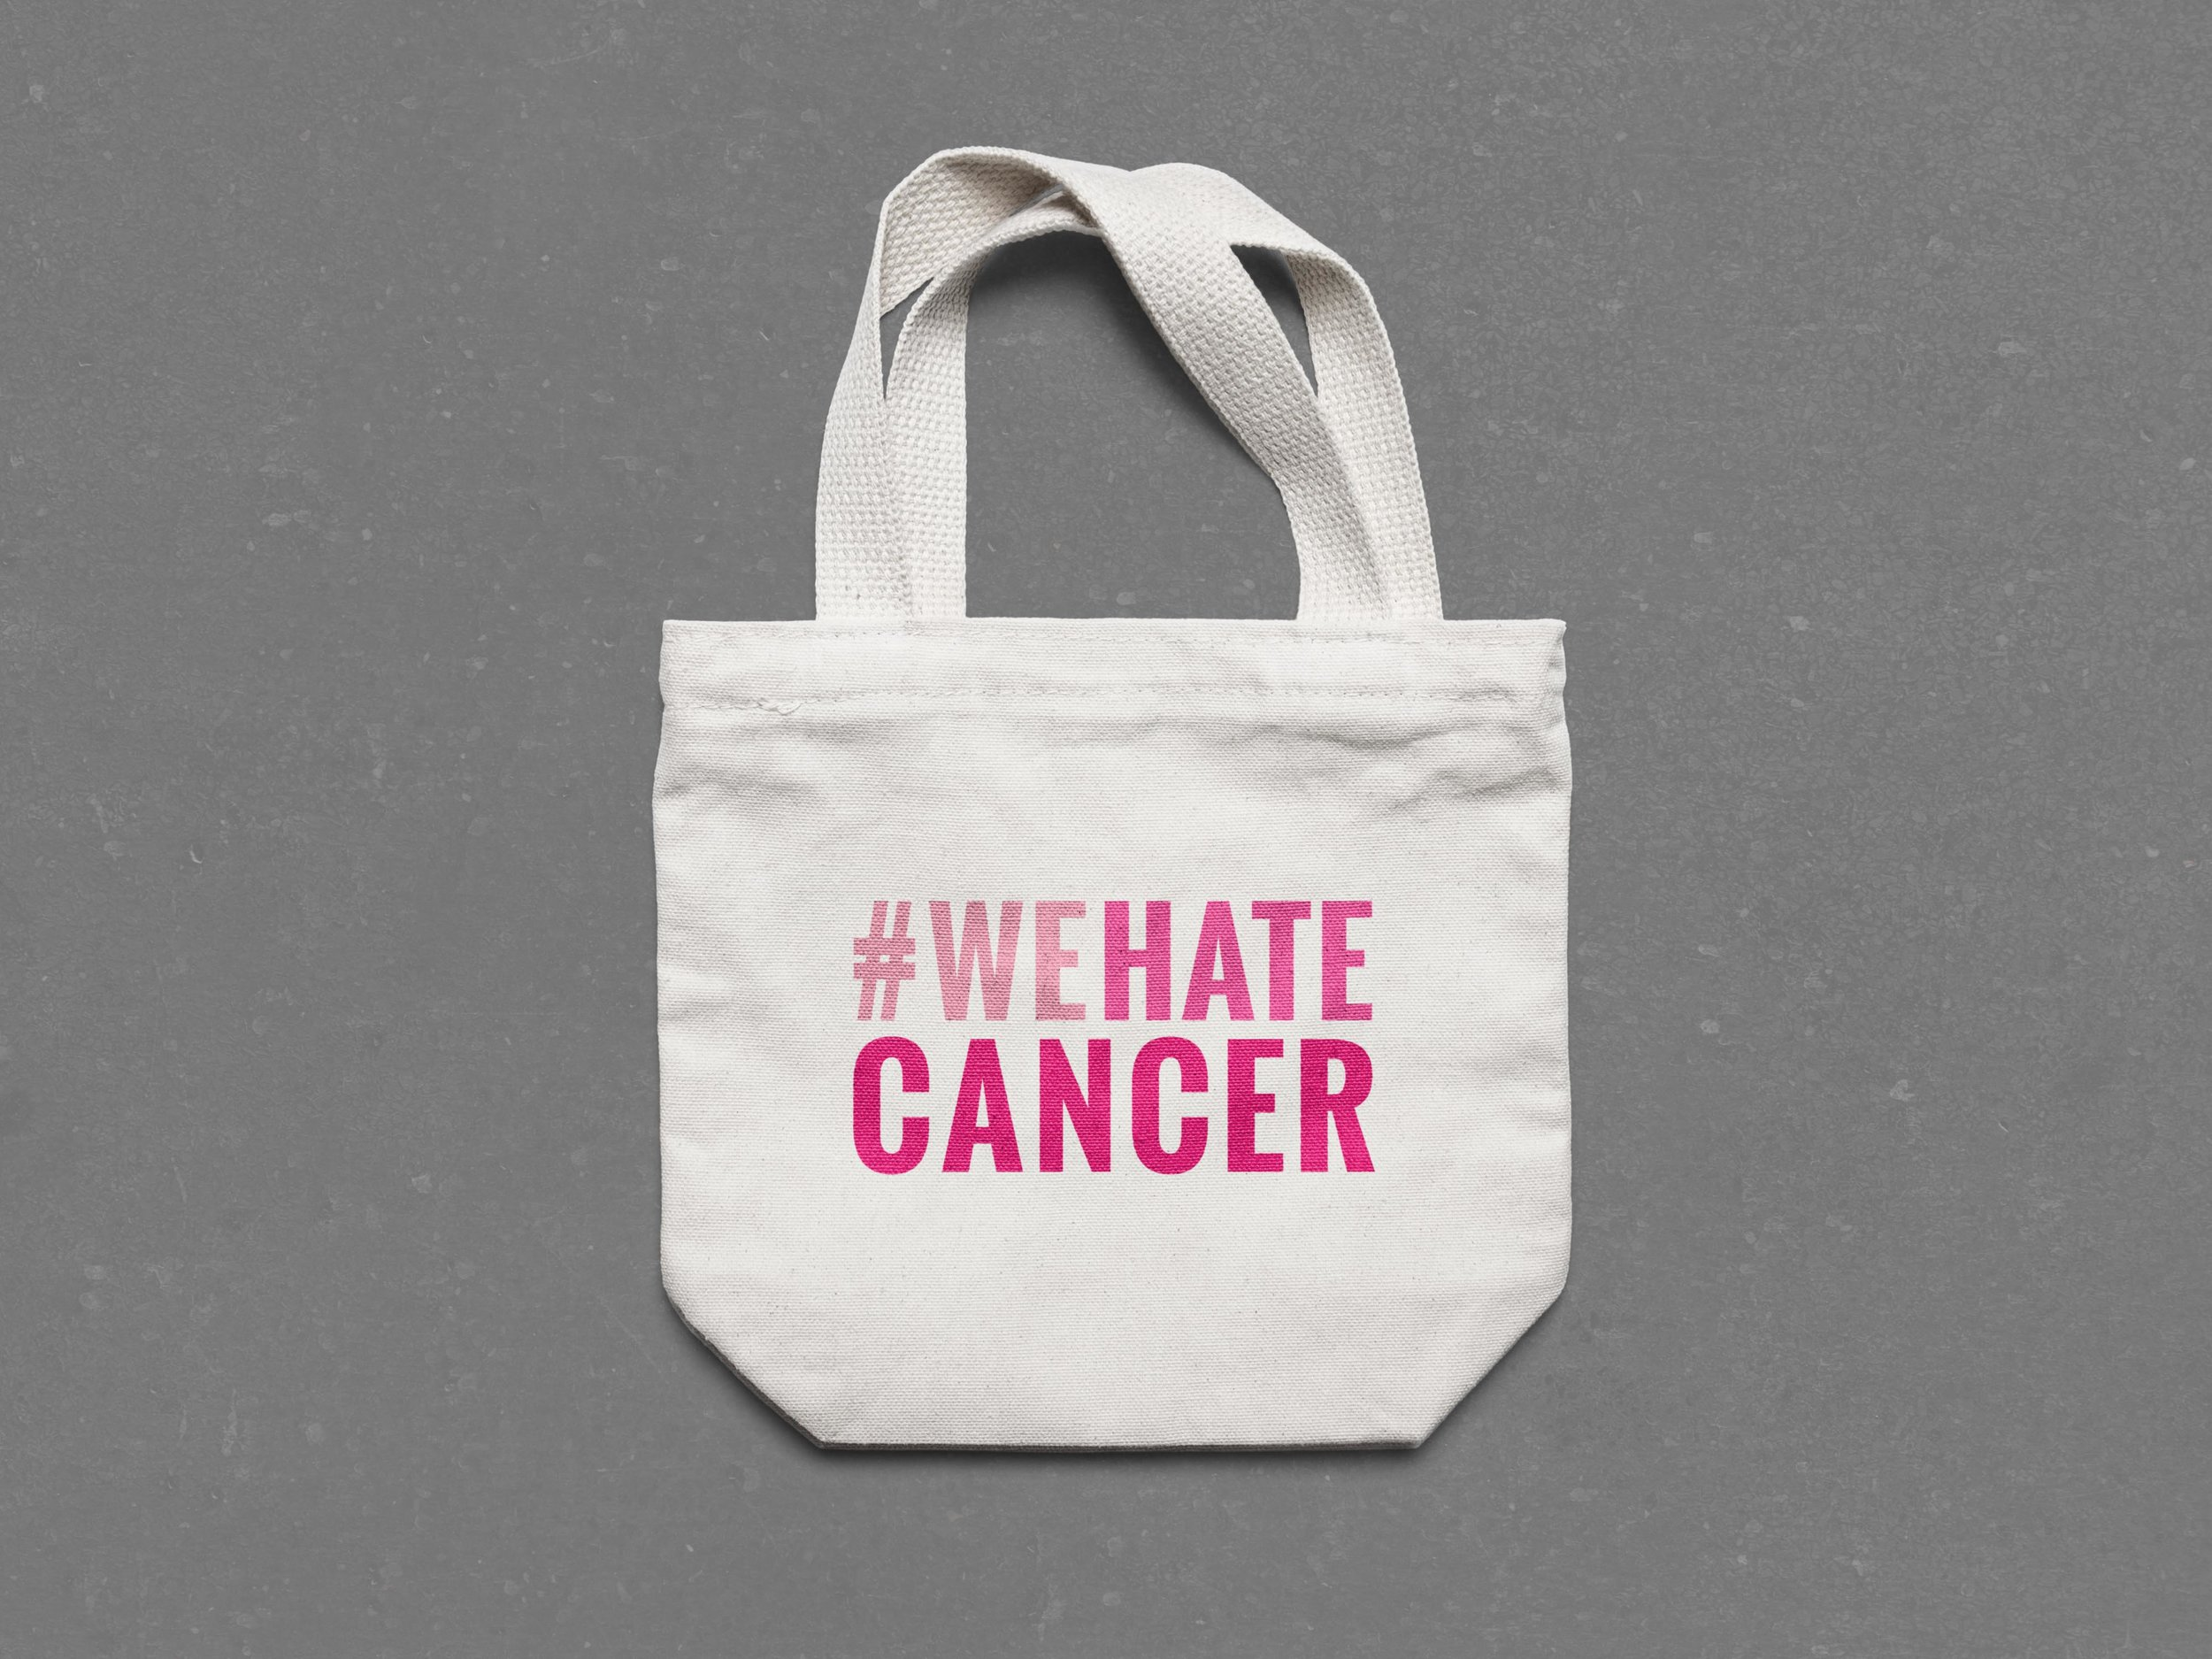 Small Canvas Tote Bag MockUp_JBMF-wehatecancer3.jpg